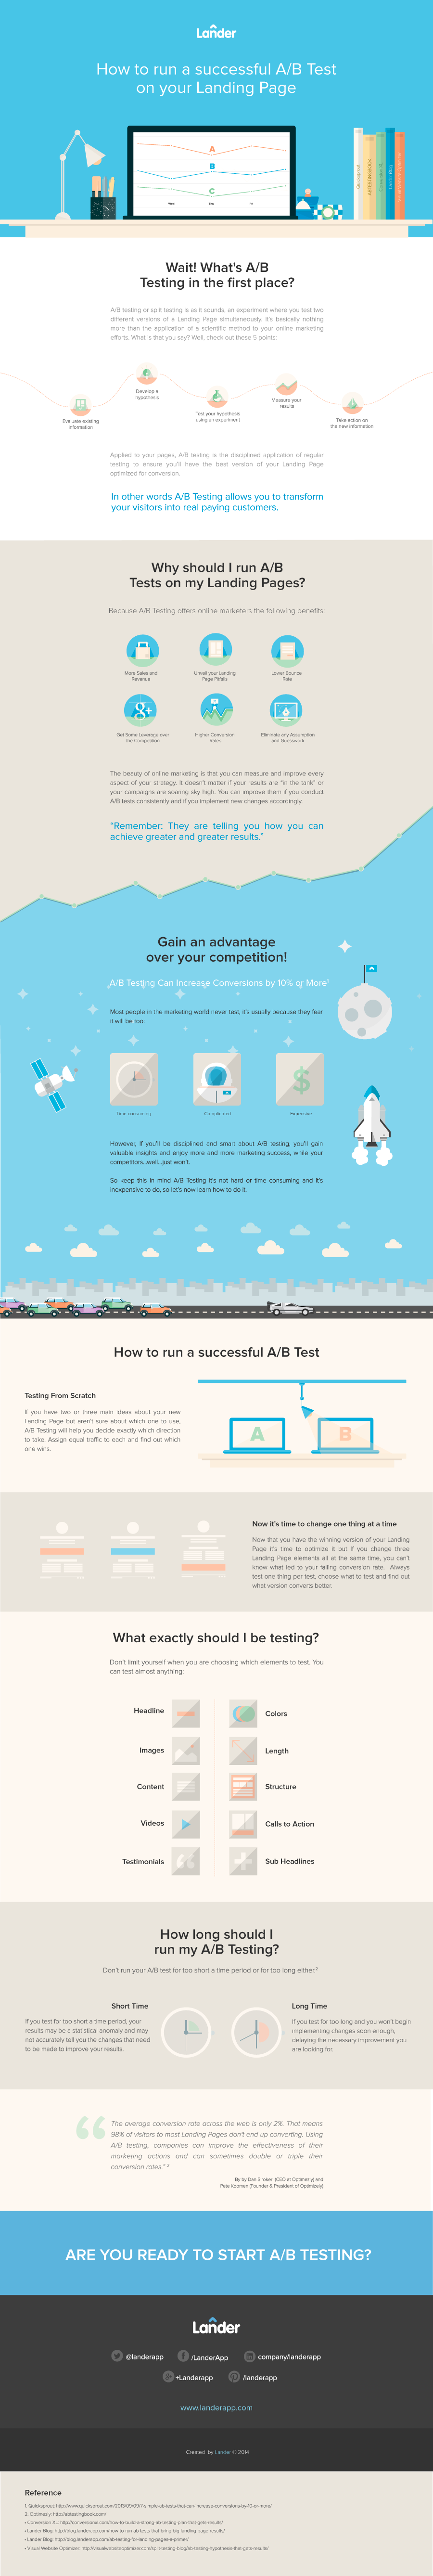 landers_ab-testing-infographic_900